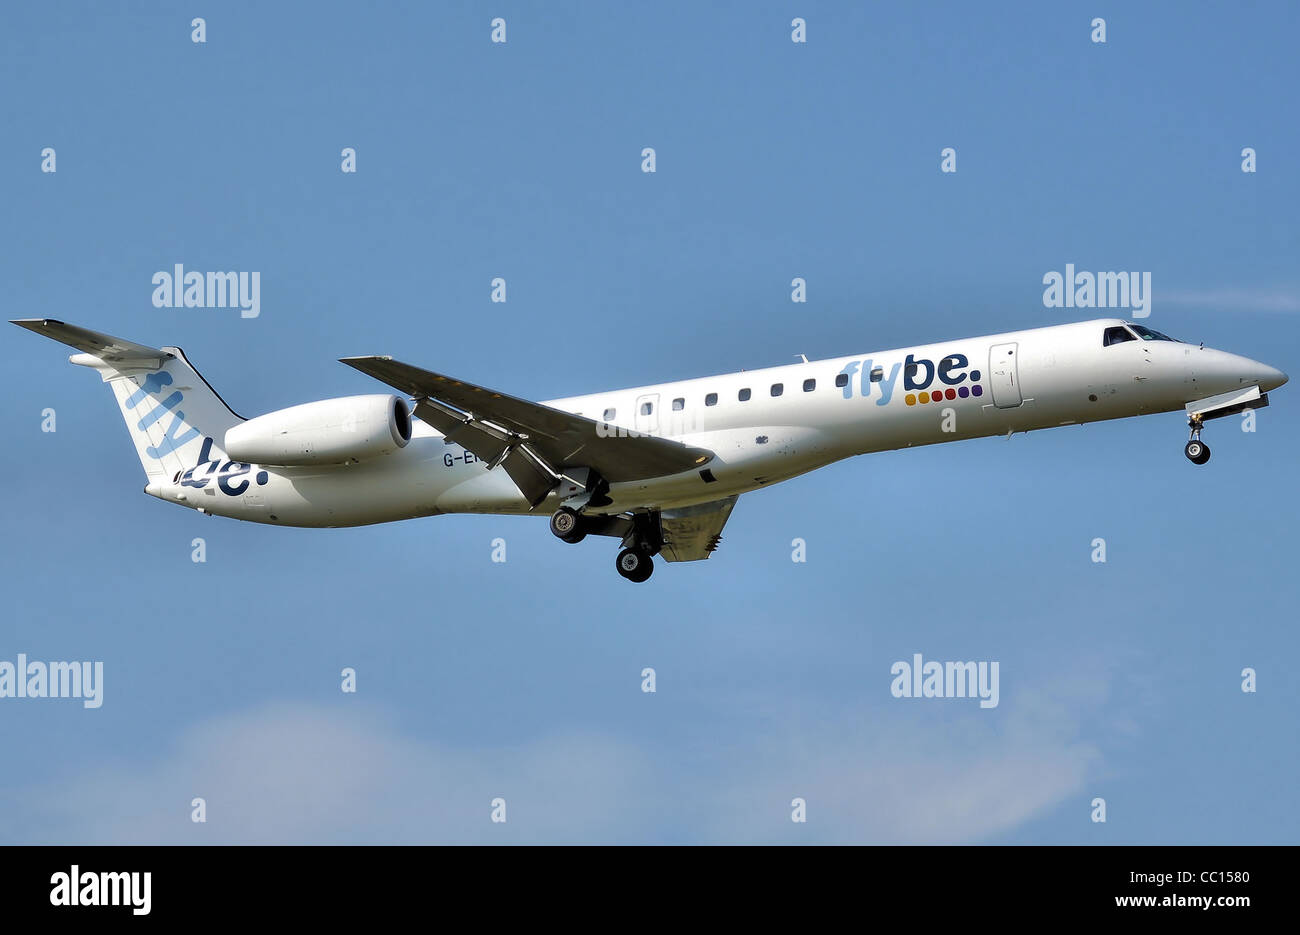 Flybe Embraer ERJ 145 (G-ERJA) lands at Birmingham International Airport, England. - Stock Image